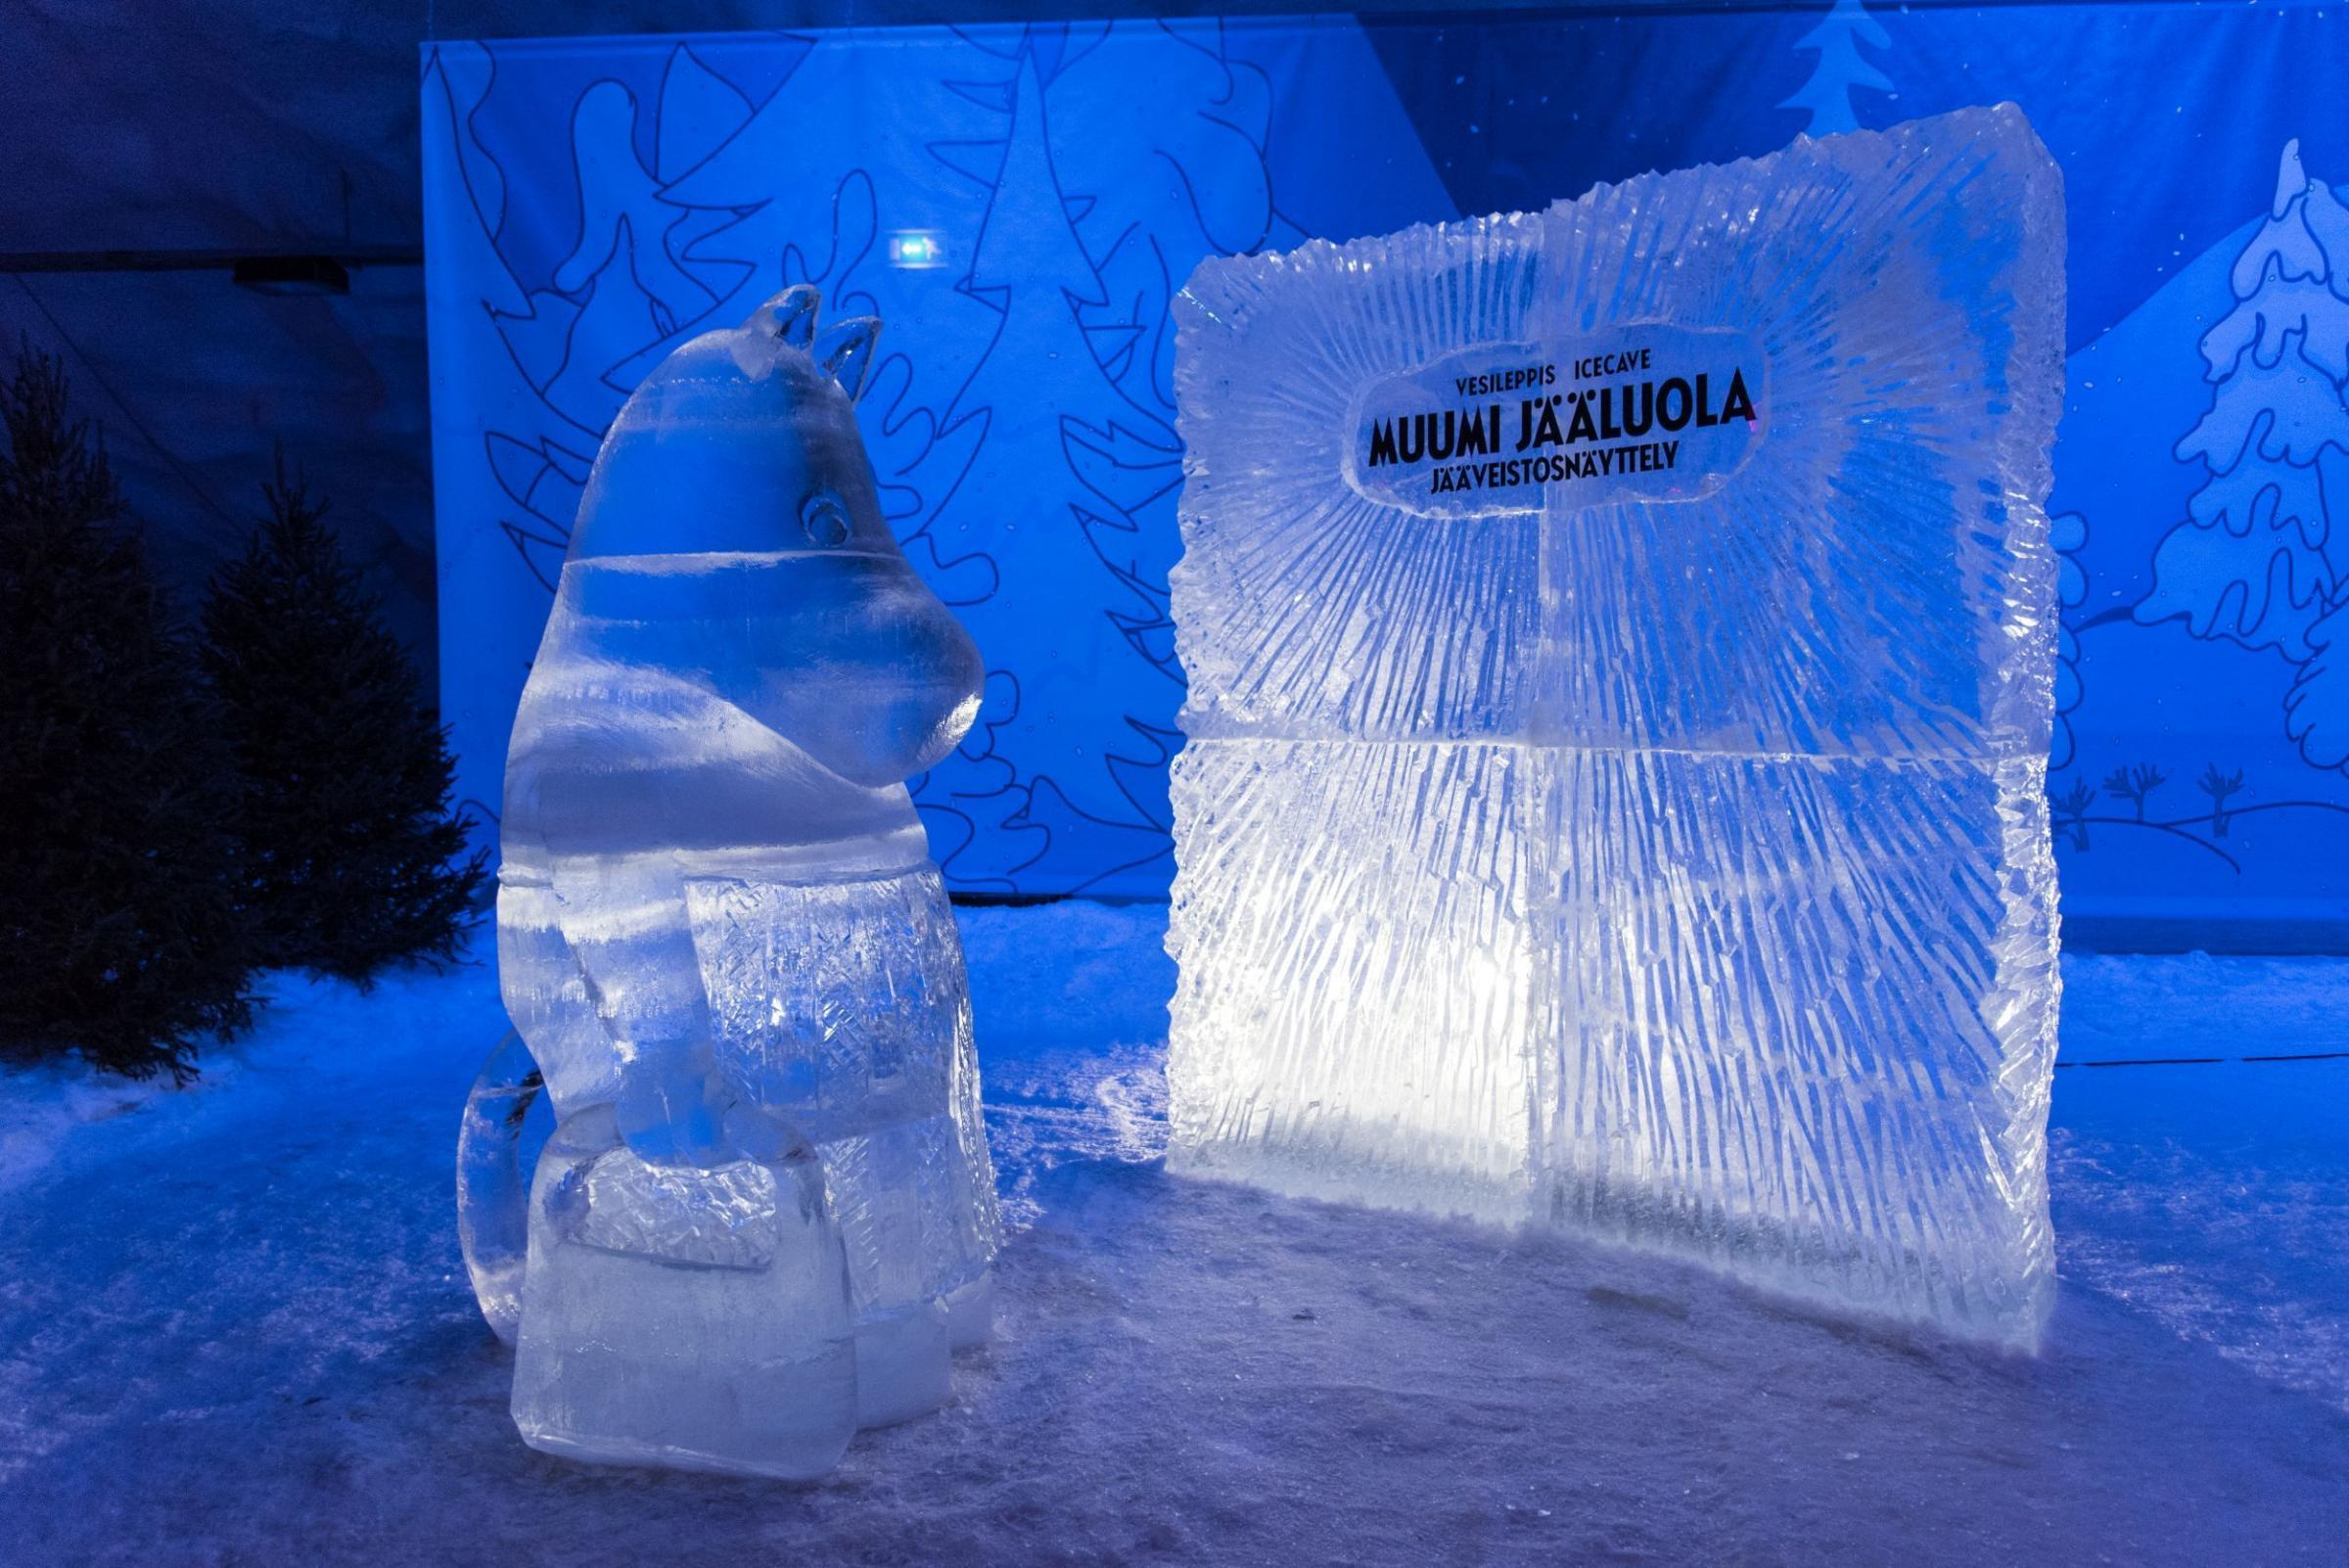 The Moomin ice cave at Vesileppis Resort in Finnish Lakeland and (below) dawn in the forests of Tampere